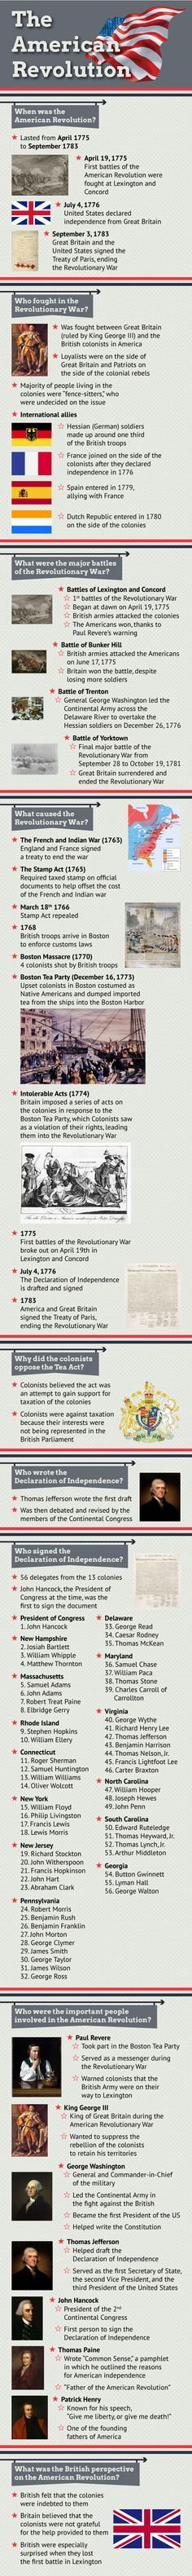 Dates of revolutionary war in Melbourne